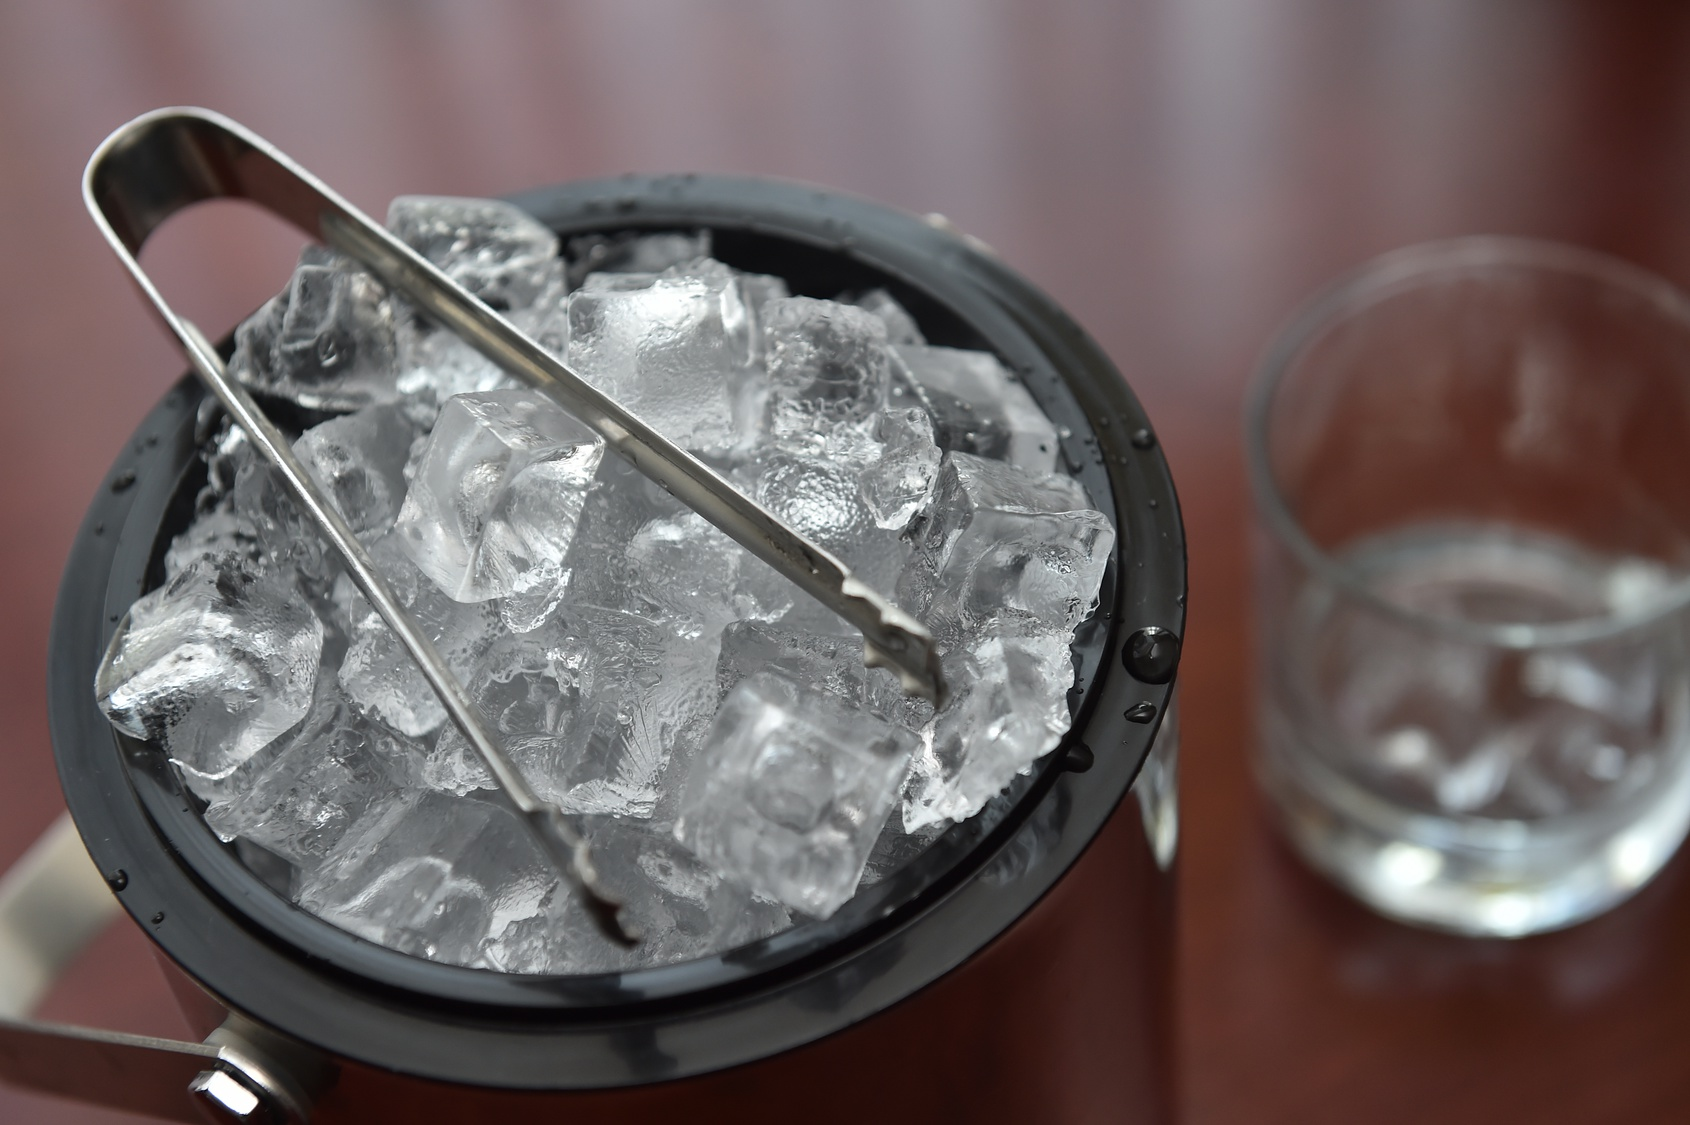 Ice cubes in the bucket